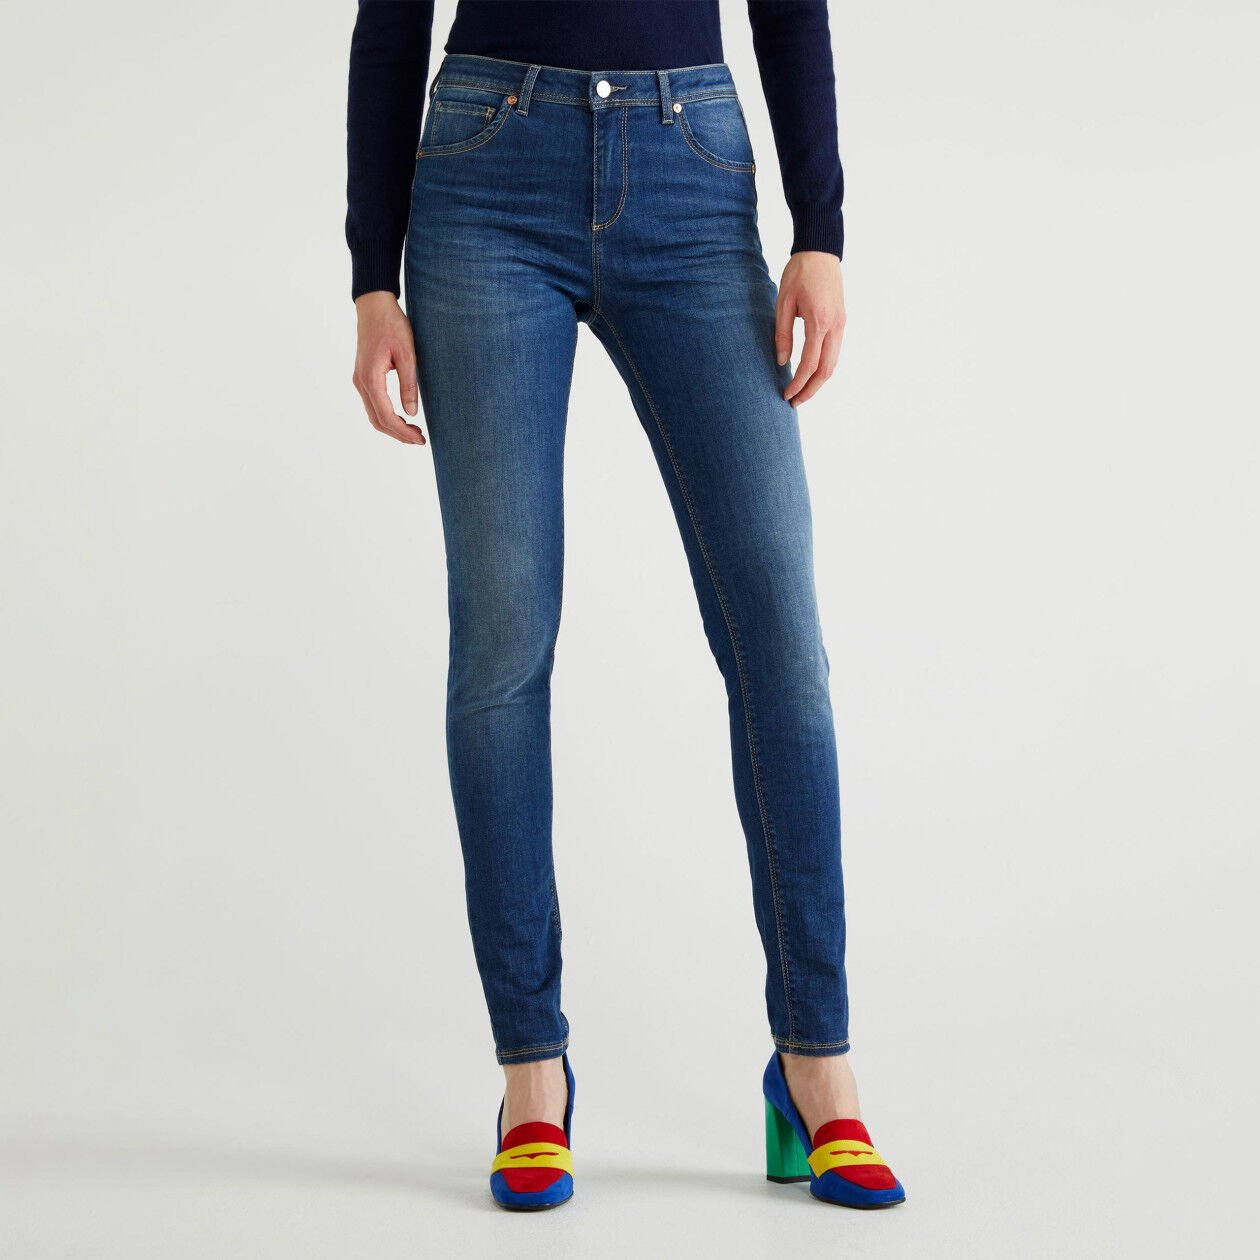 Skinny fit push up jeans